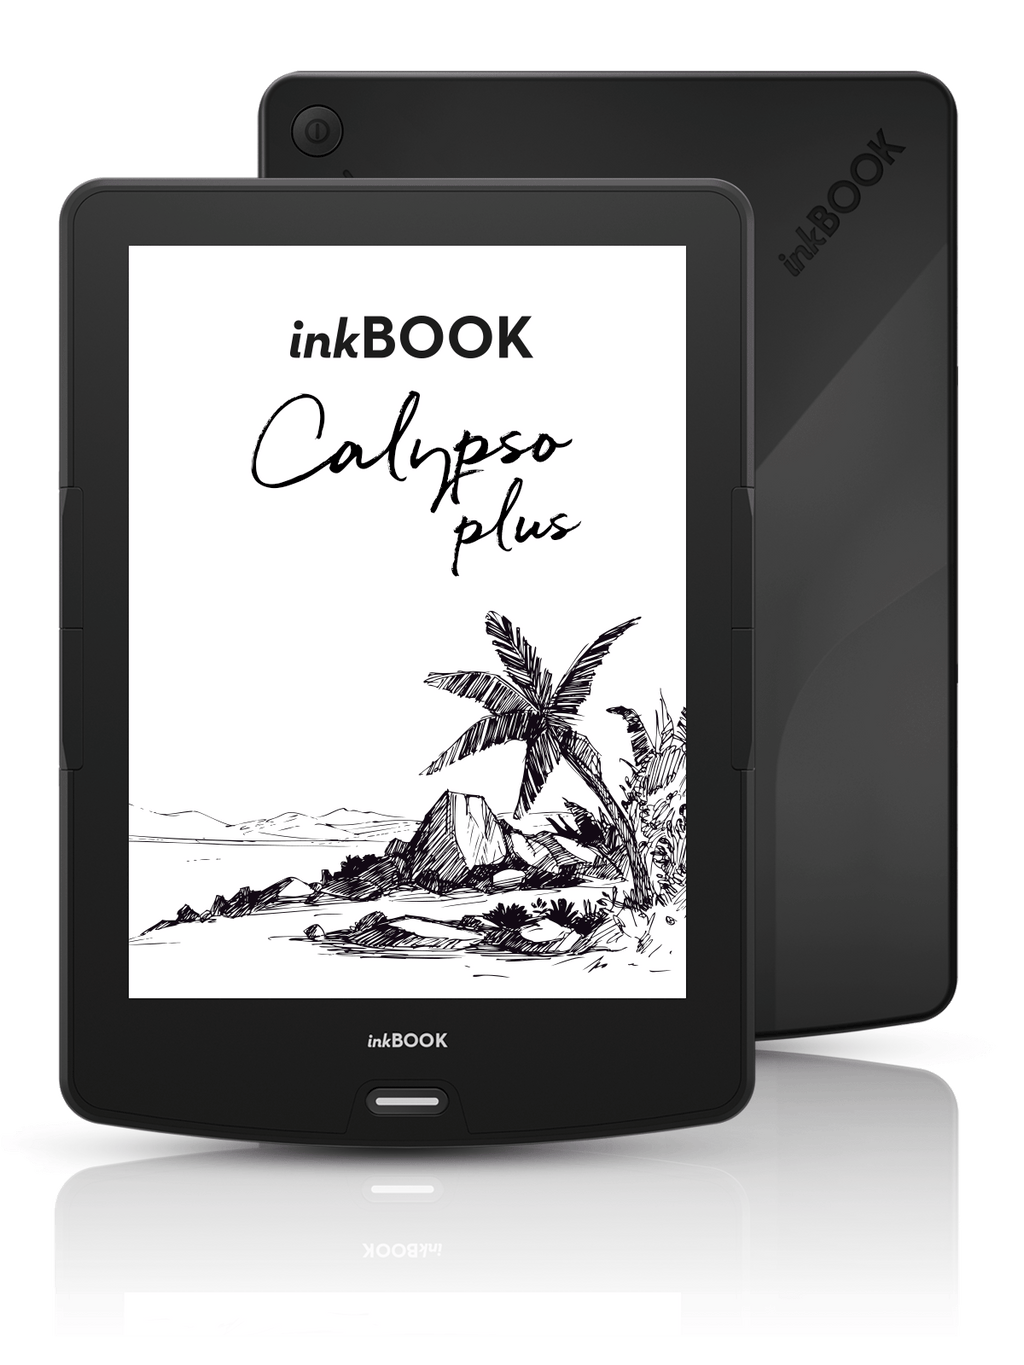 inkBOOK Calypso Plus Black